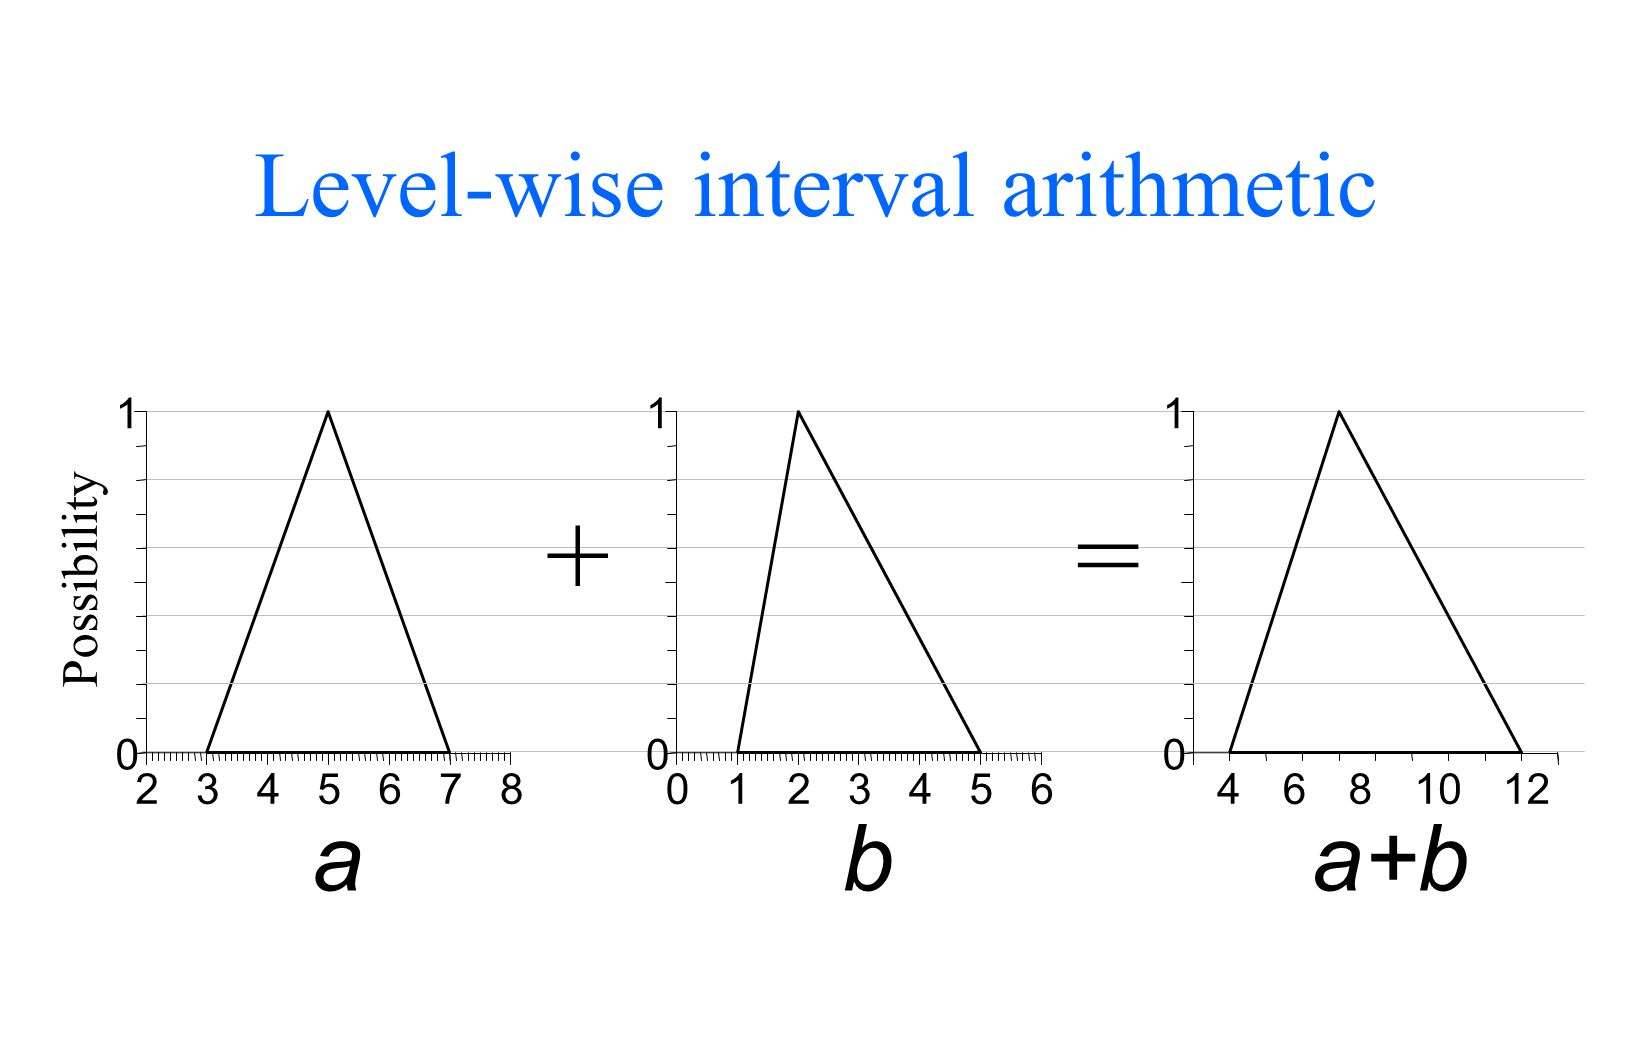 Level-wise interval arithmetic a 0123456 0 1 b a+b 0 1 46810122345678 0 1 Possibility +=